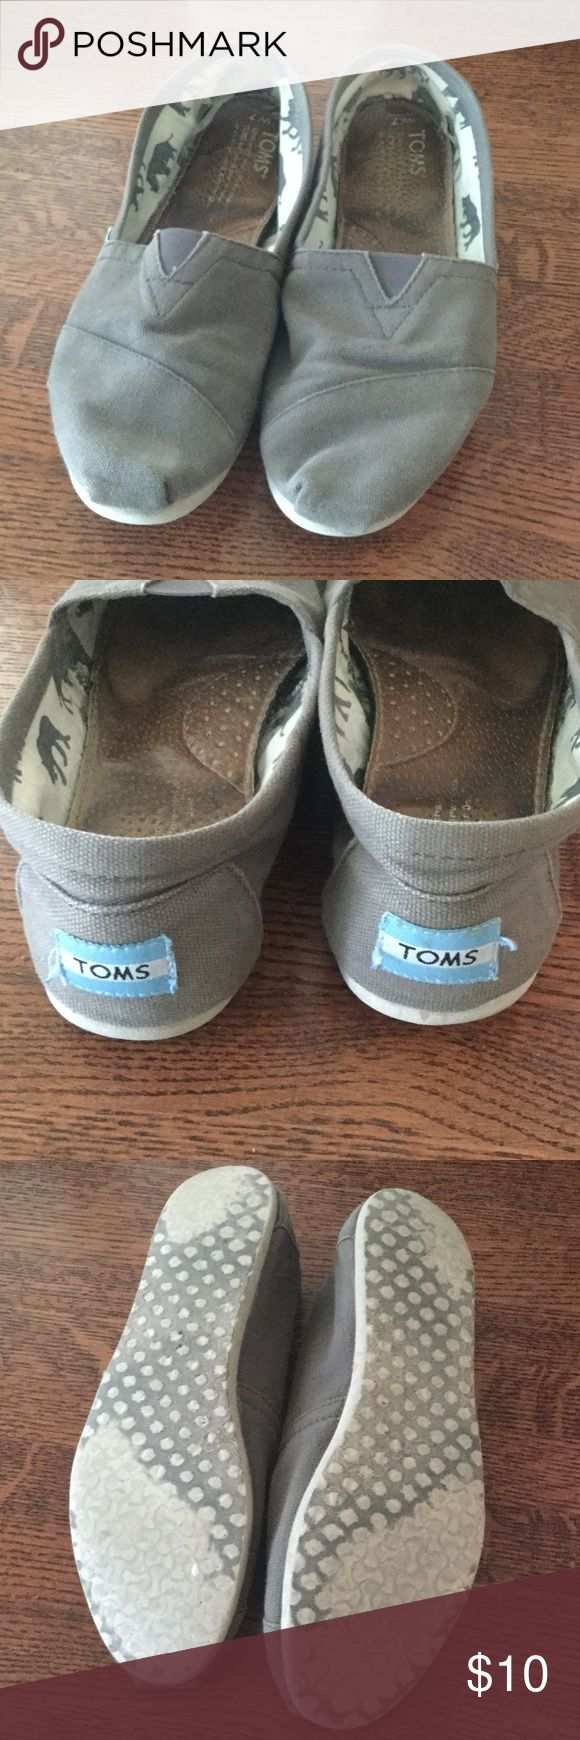 Gray TOMS Well worn. TOMS Shoes